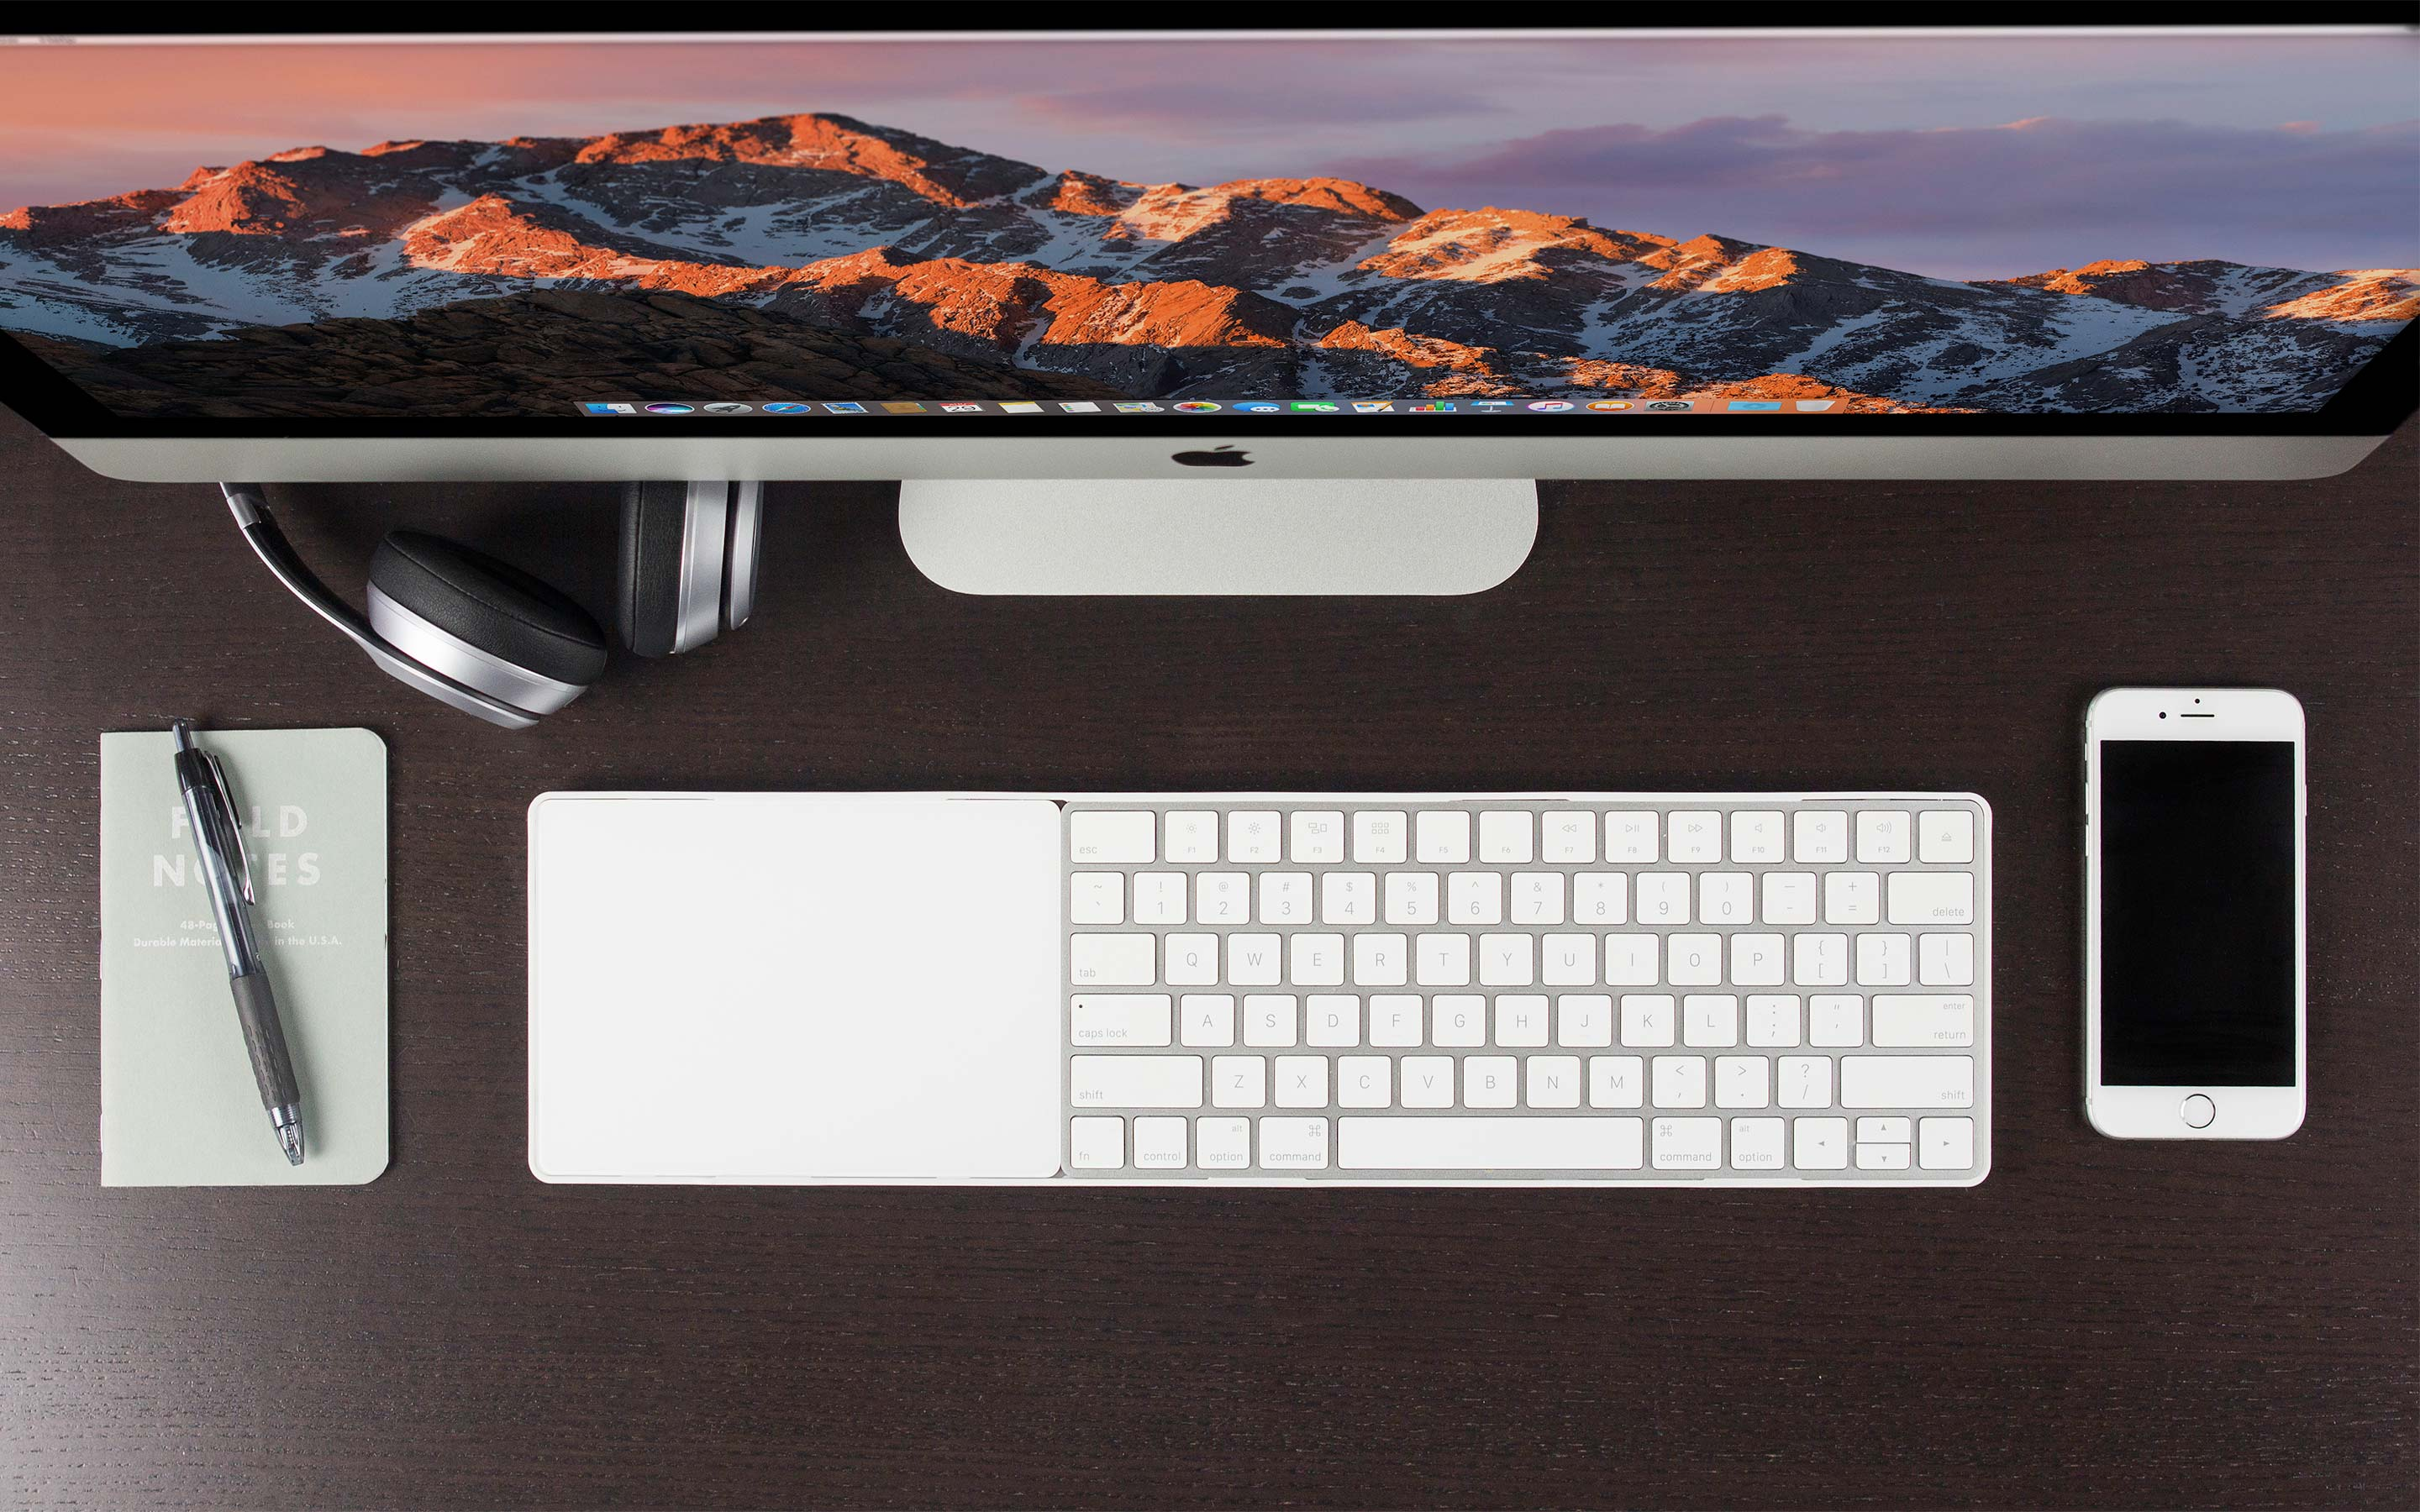 20c03fbb3ea Twelve South's new accessory connects your Apple Wireless Keyboard and Magic  Trackpad 2